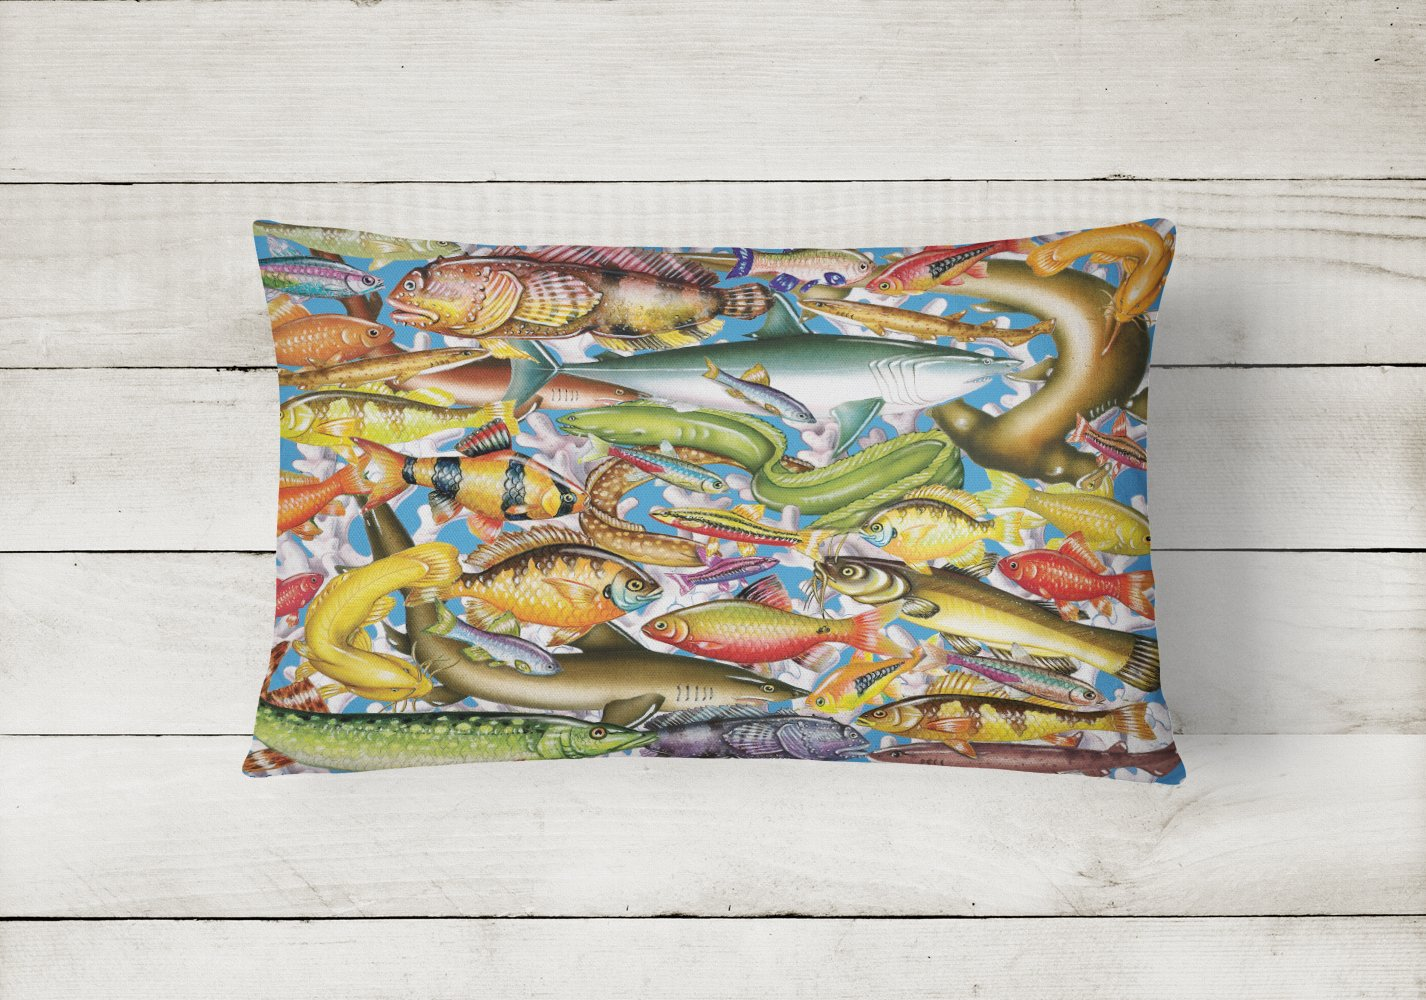 Fish of the Deep Canvas Fabric Decorative Pillow PRS4055PW1216 by Caroline's Treasures